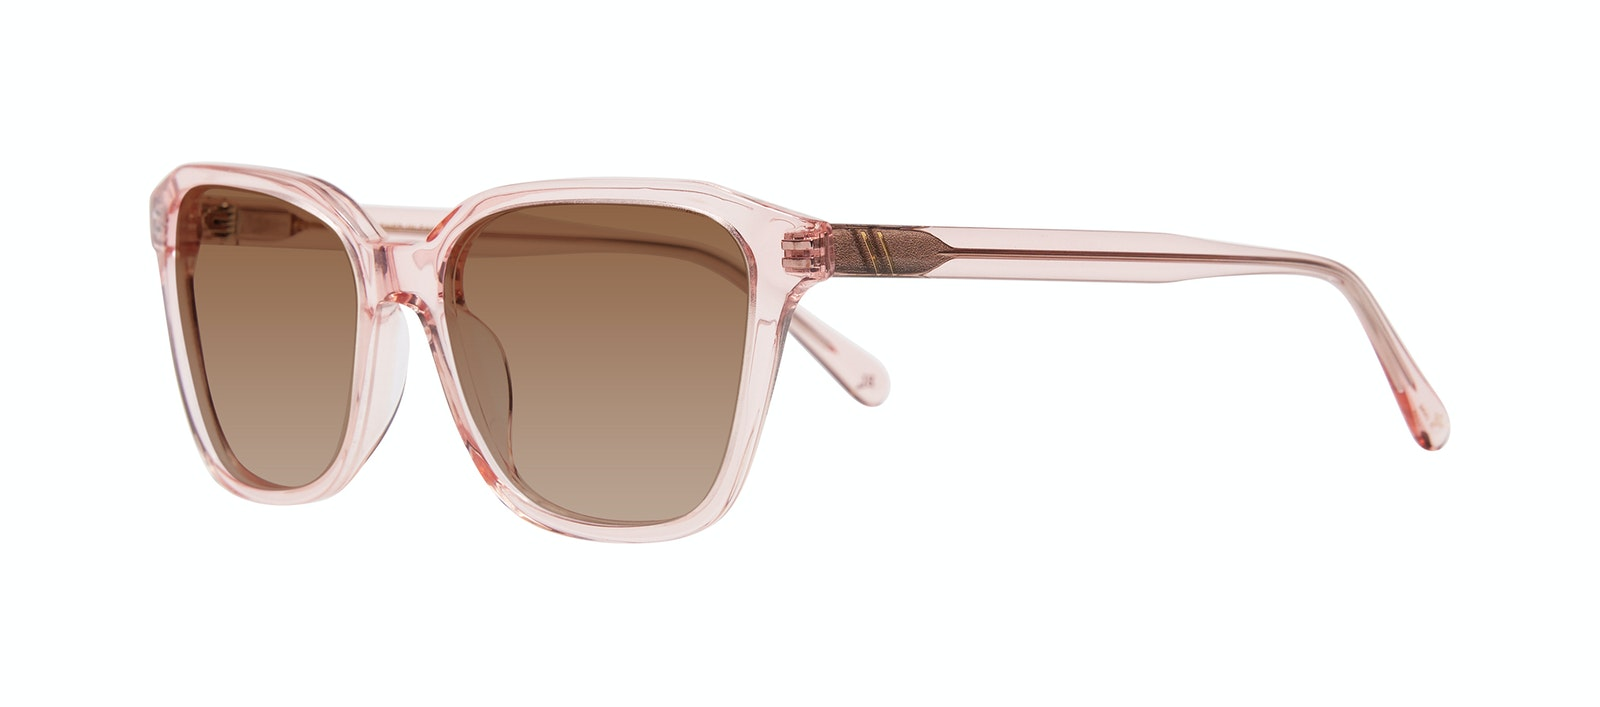 Affordable Fashion Glasses Square Sunglasses Women Basel Peony Tilt